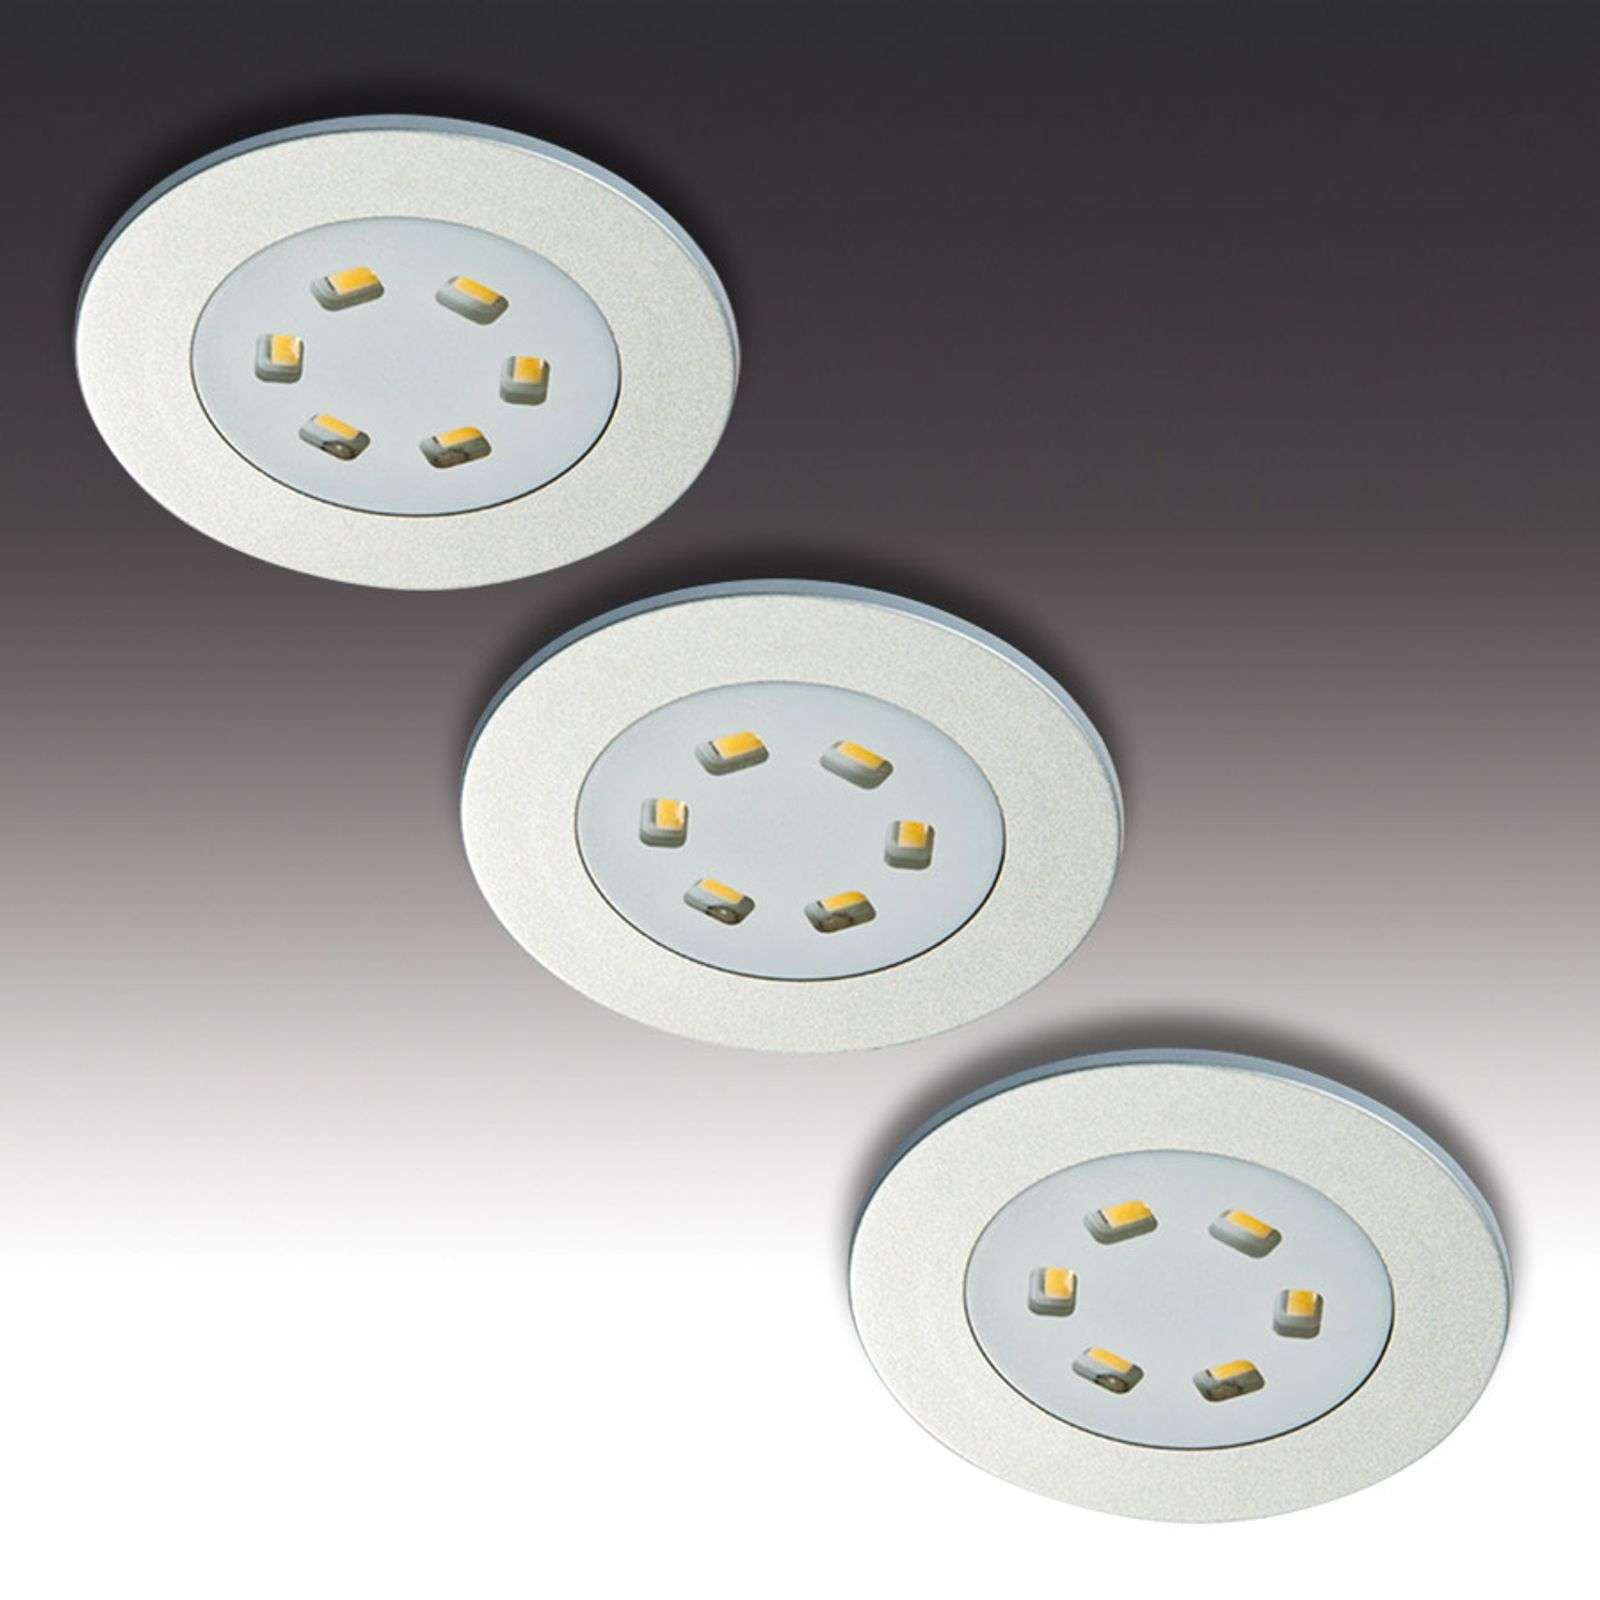 Lámpara LED empotrable R 55, set de 3 unidades